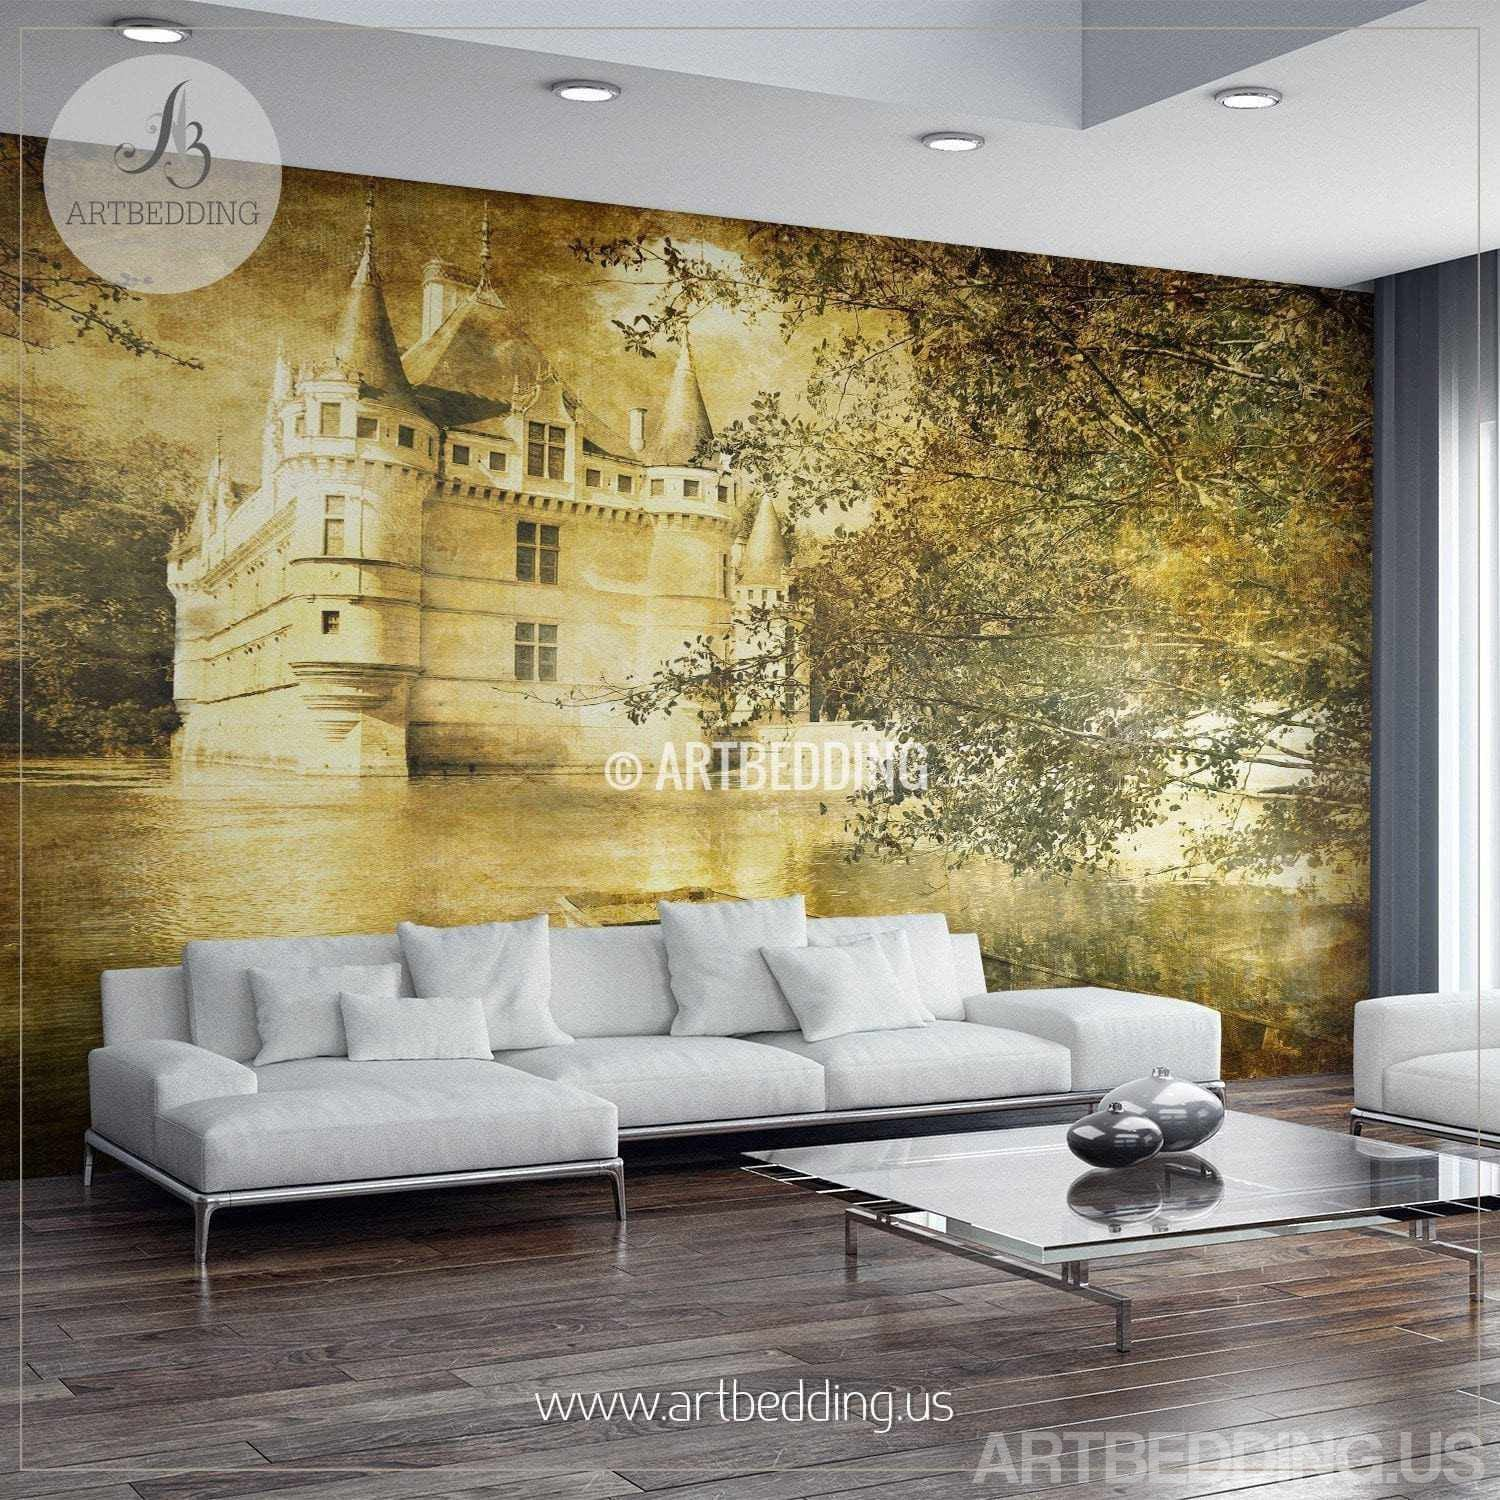 Castle Wall Mural vintage france castle wall mural, france castle vintage photo